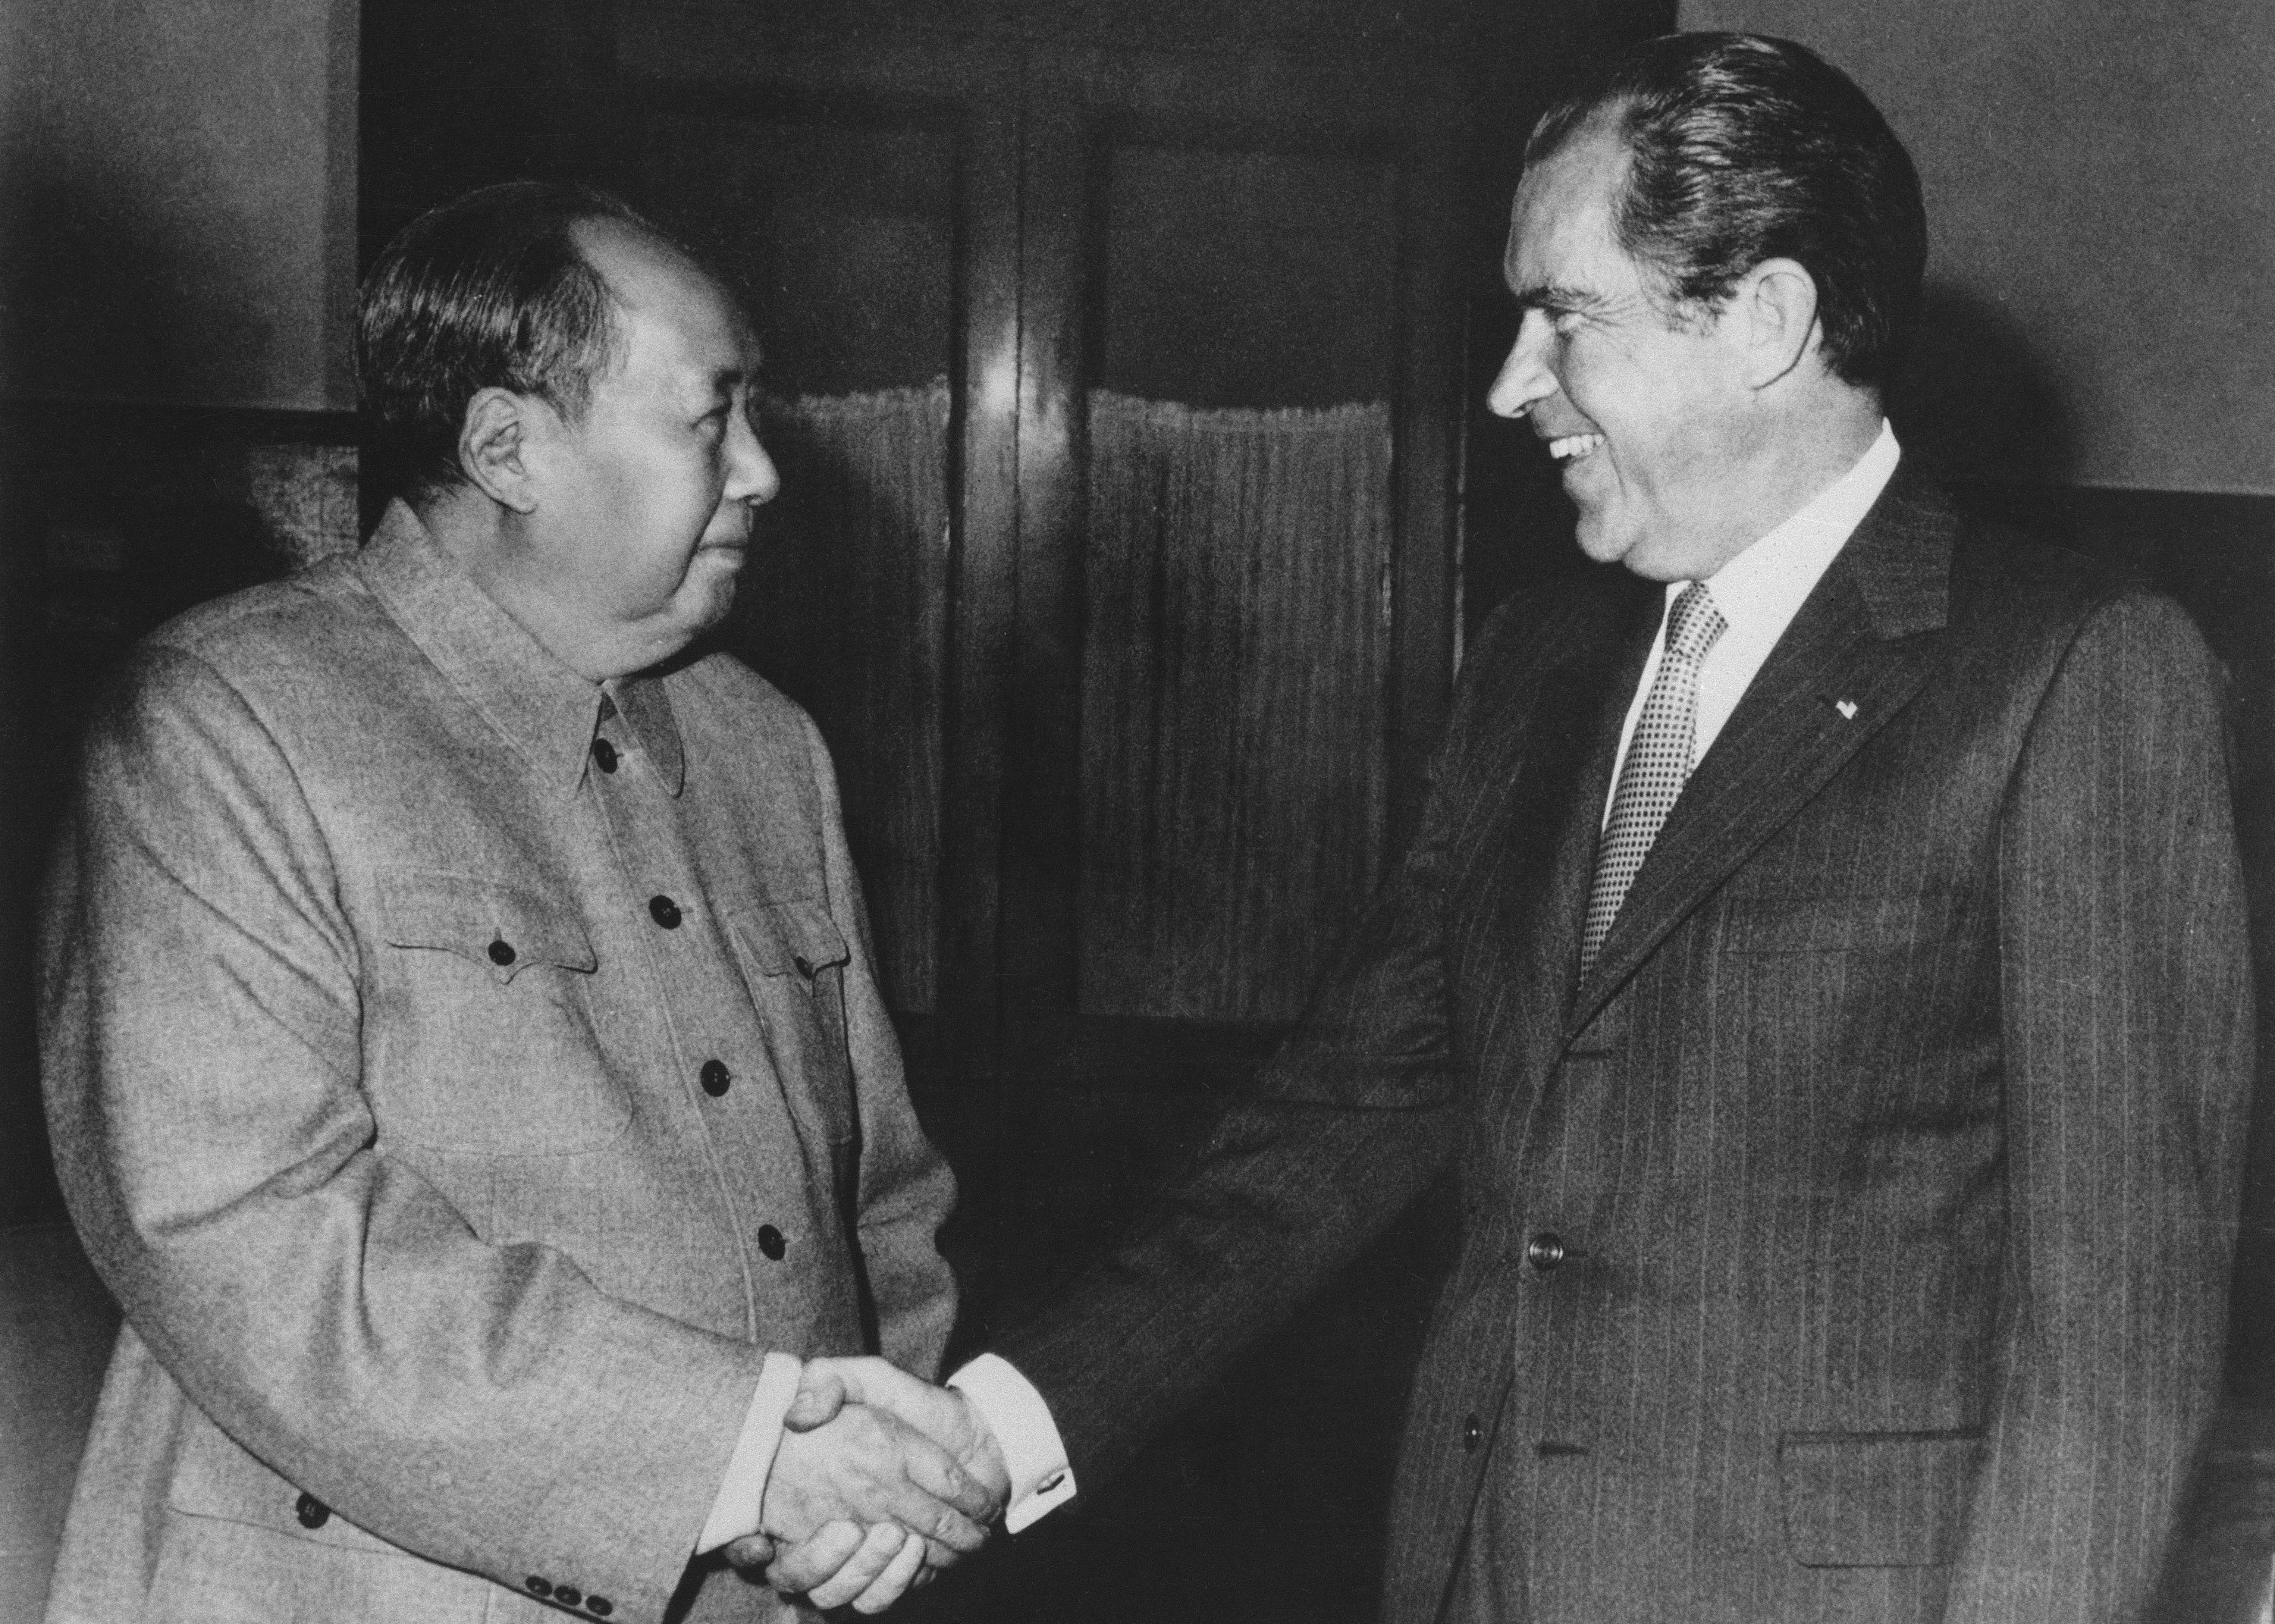 Chinese communist party leader Mao Zedong (L) and U.S. President Richard Nixon shake hands as they meet in Beijing, China, Feb. 21, 1972. (AP Photo)